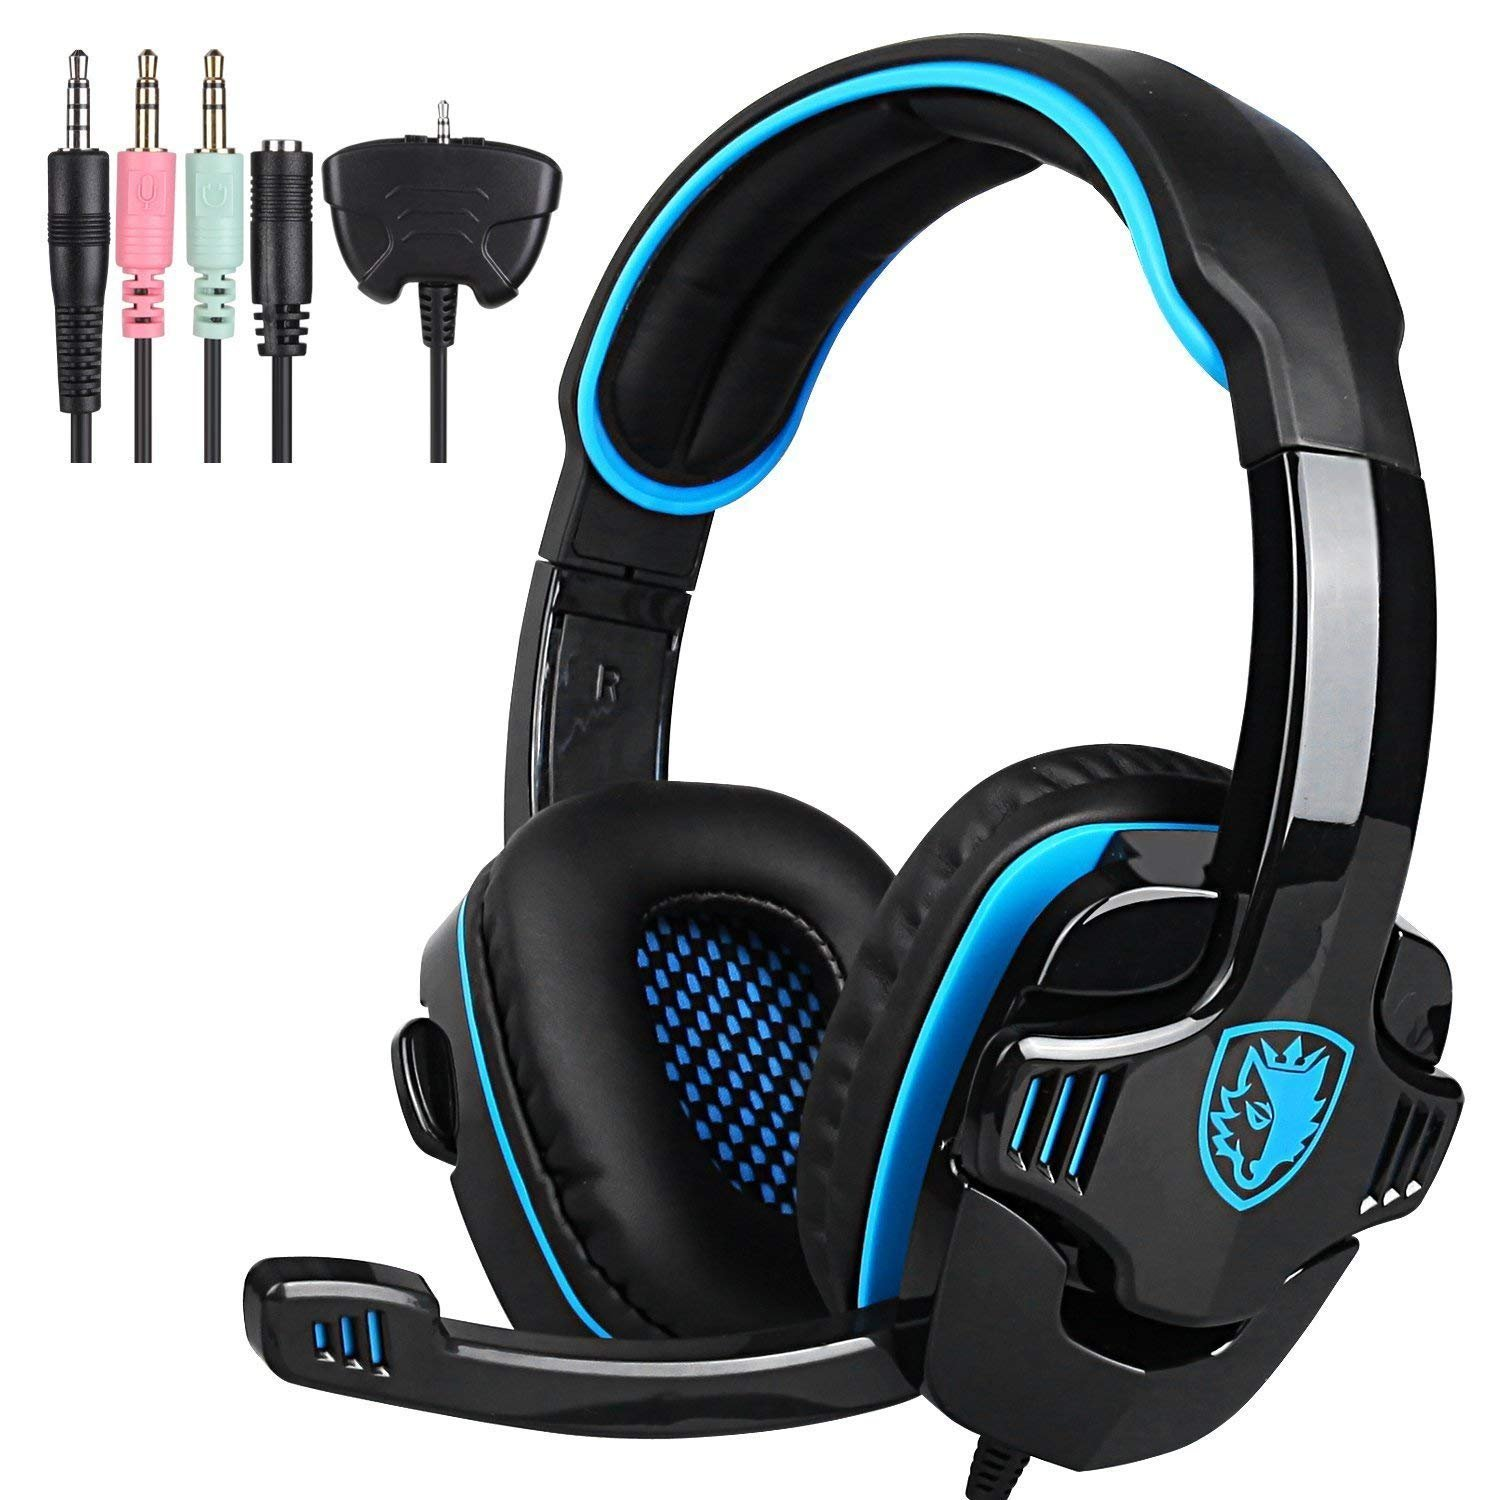 Sades Wired 3.5mm Stereo Universal Gaming Headset with Microphone (SA708 GT) - Black/Blue